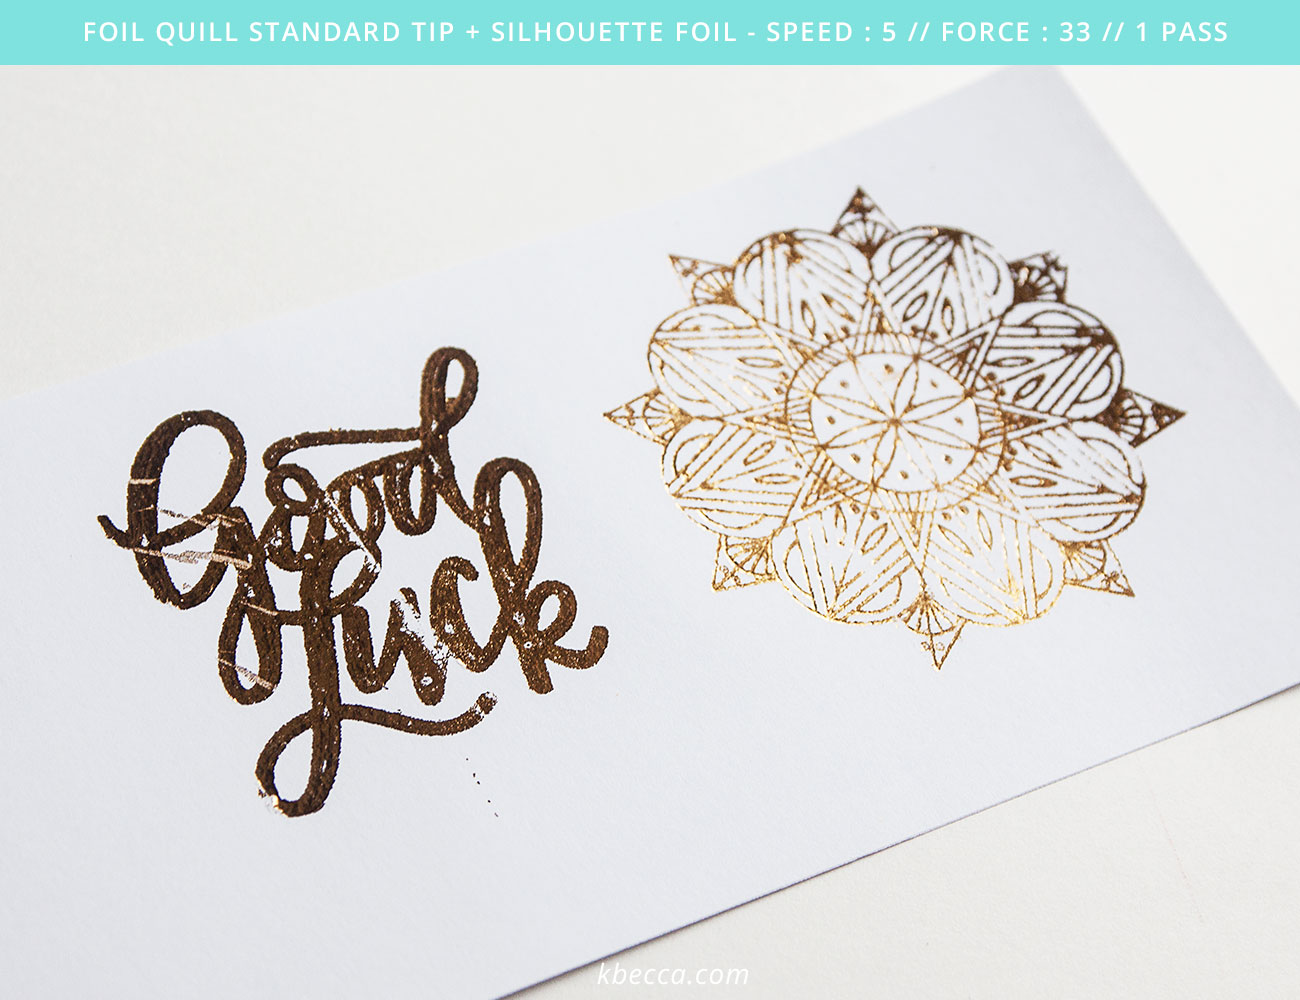 We R Memory Keepers Foil Quill Standard Tip Results #foilquill #silhouettecameo